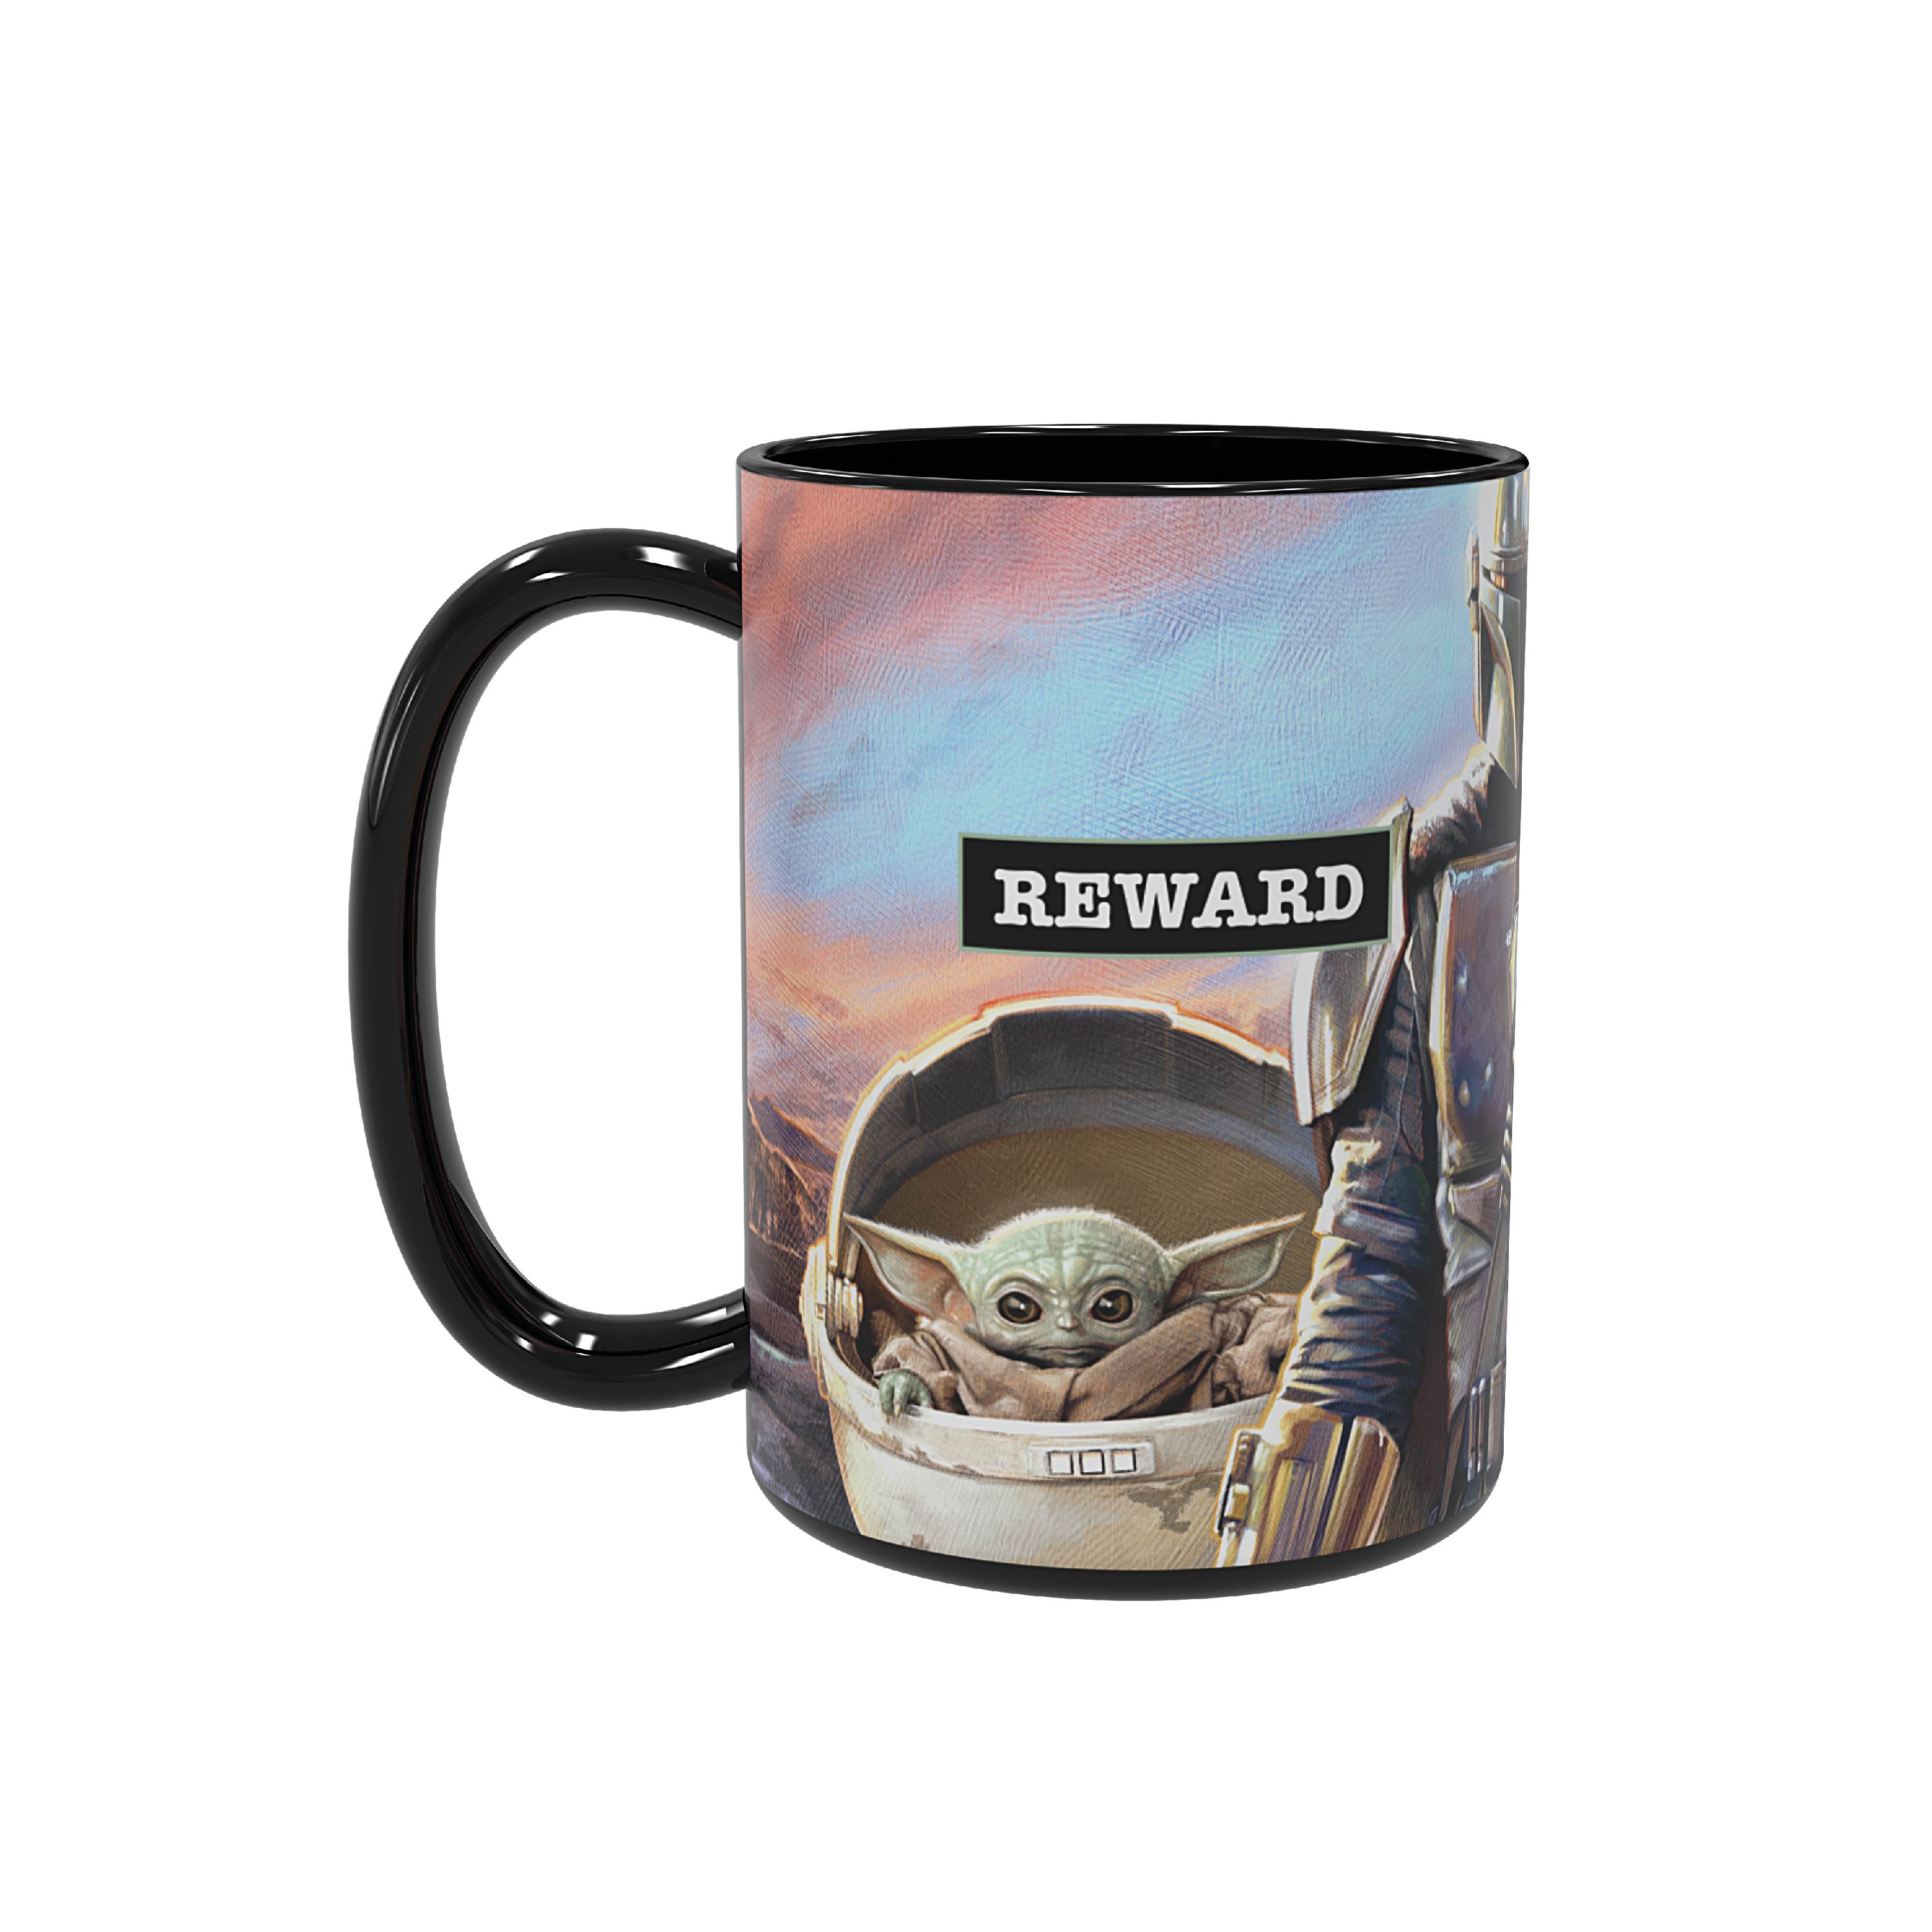 Star Wars: The Mandalorian 15 ounce Ceramic Coffee Mugs, The Mandalorian slideshow image 4